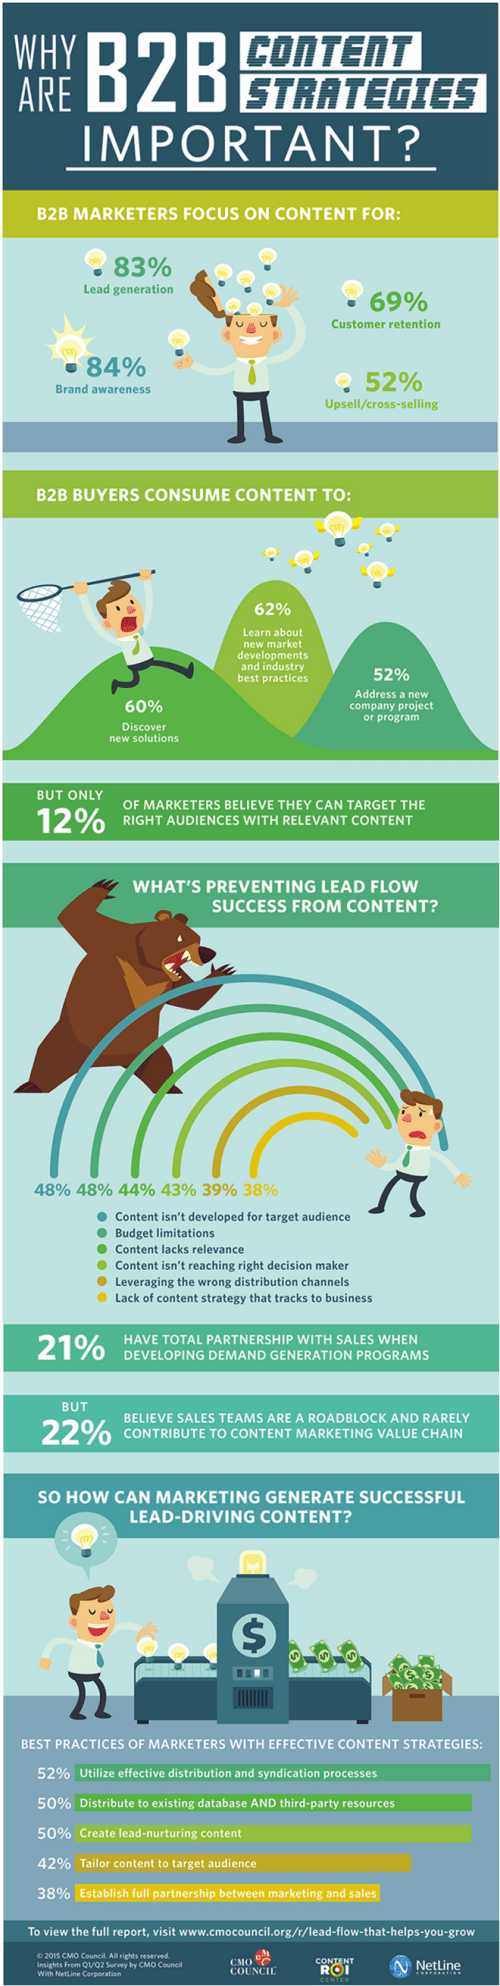 infographic-cmo-b2b-content-strategies